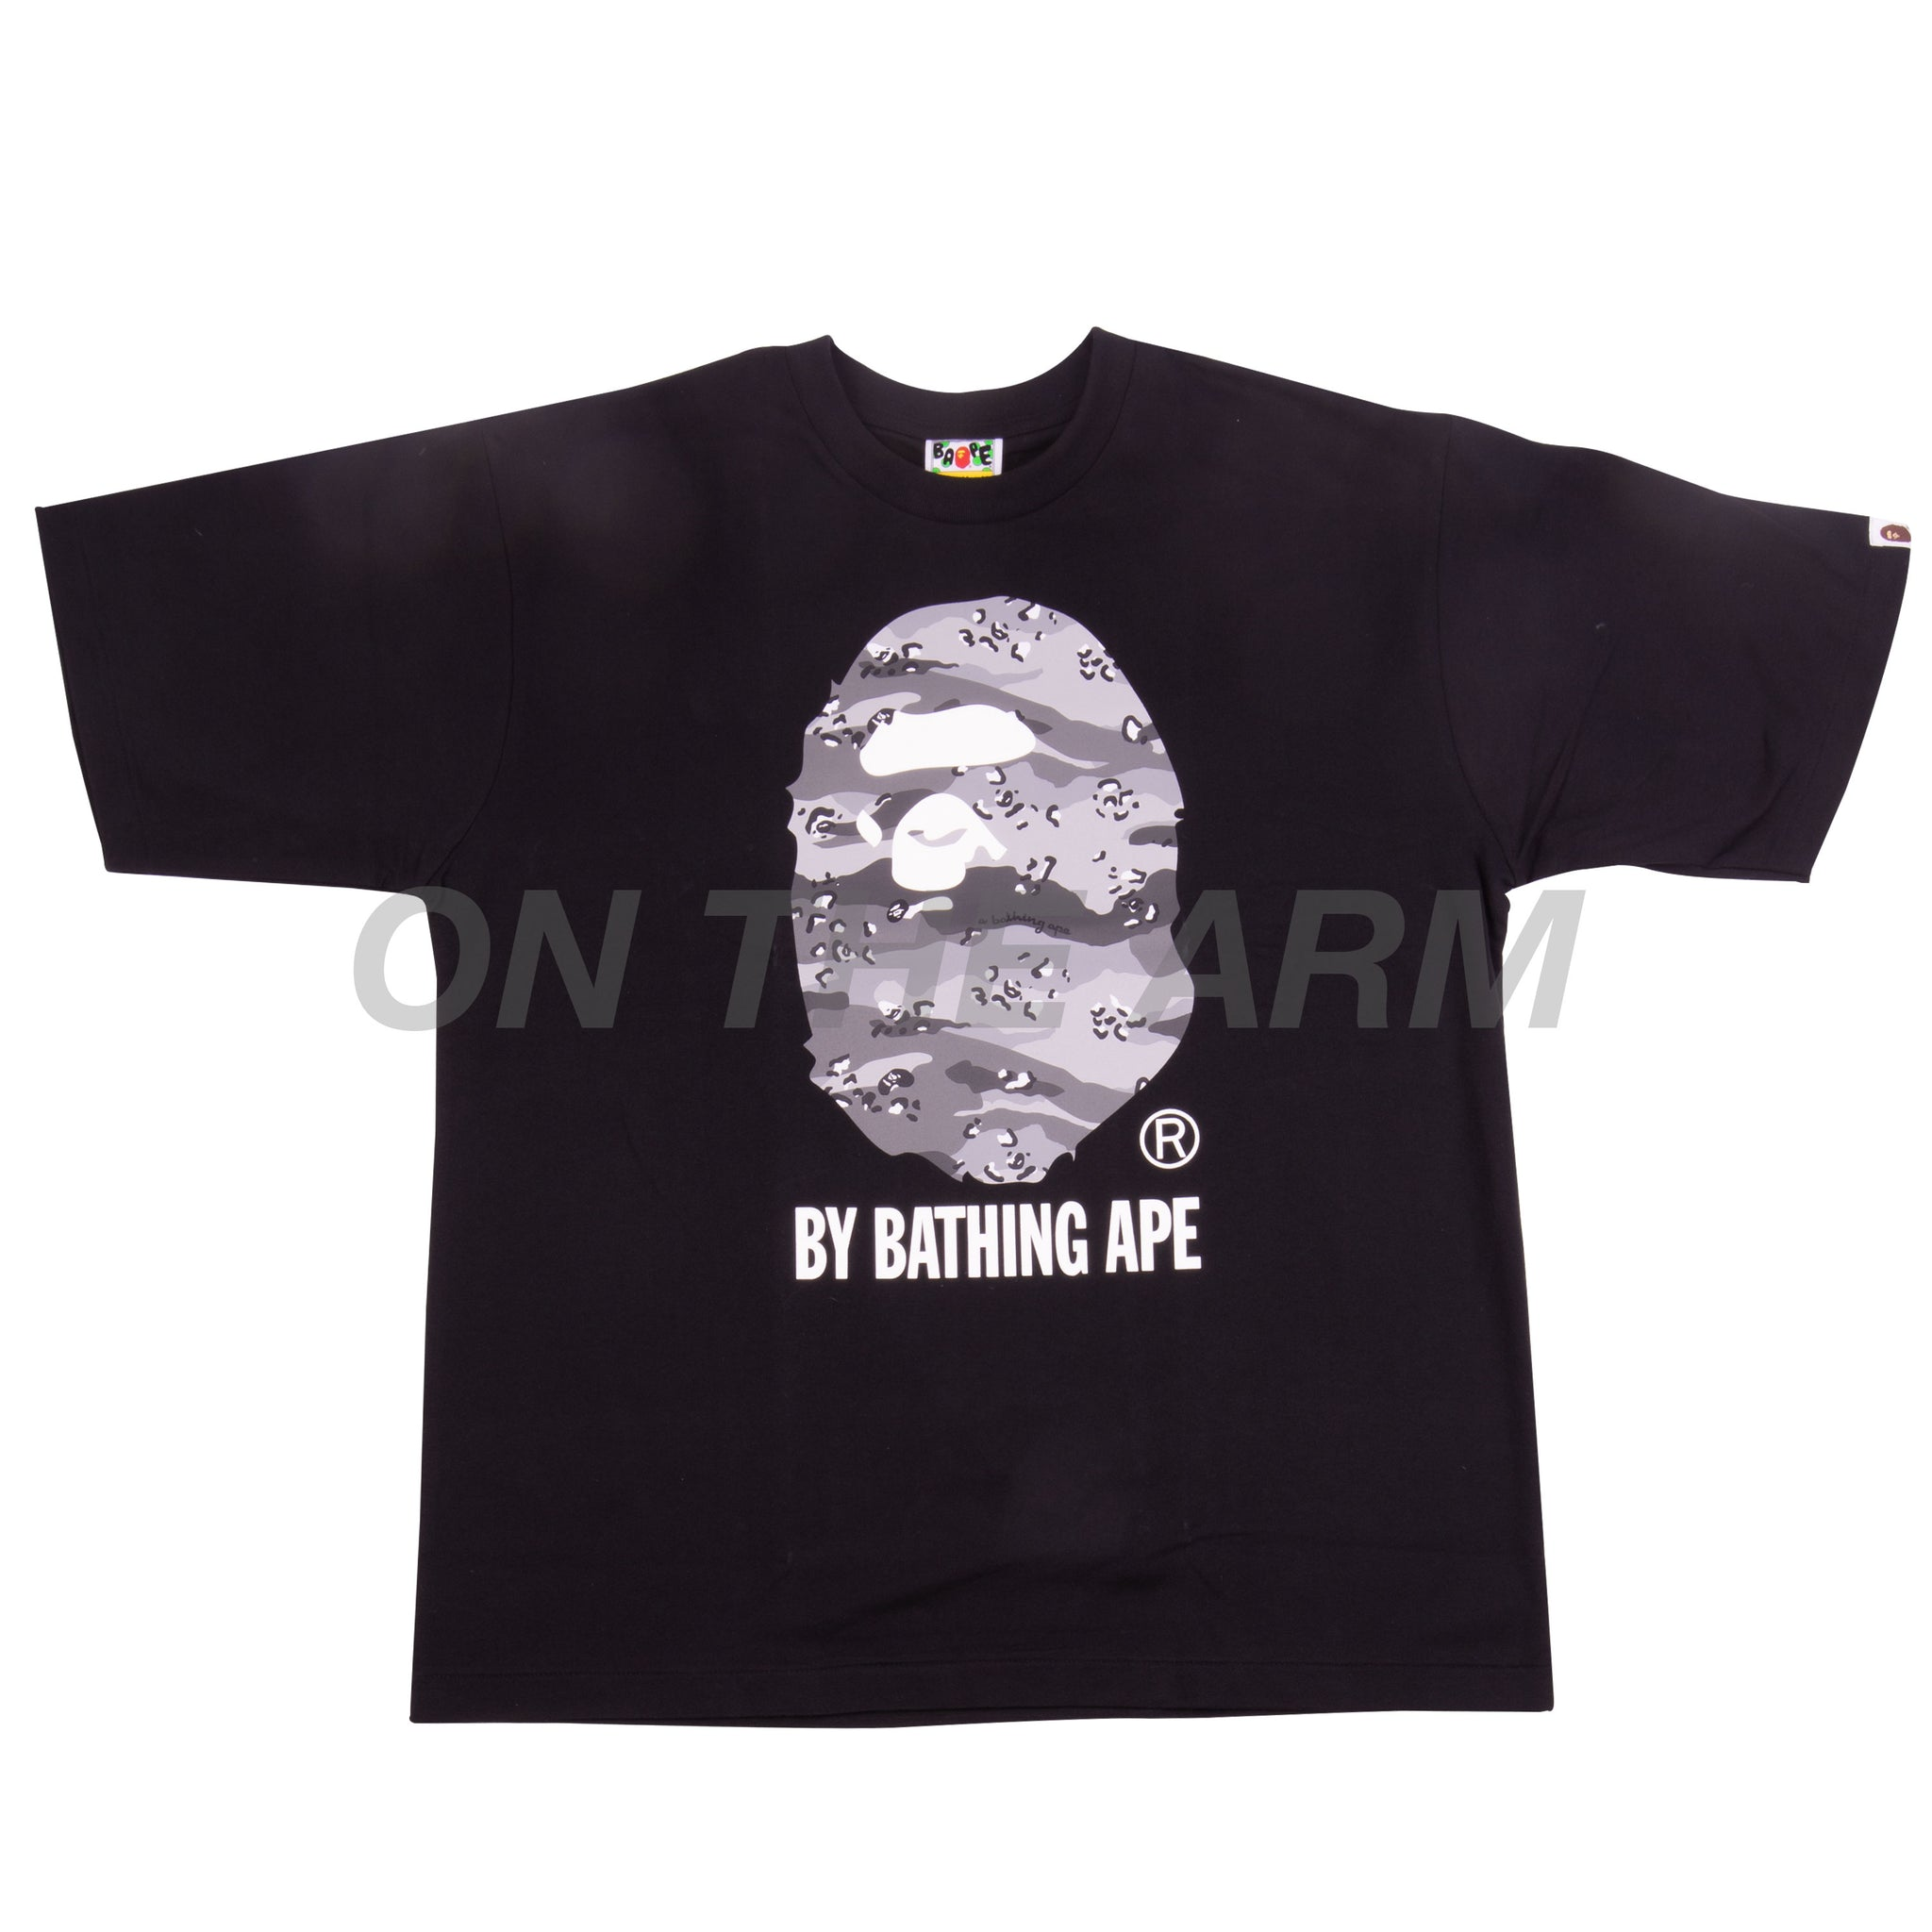 Bape Black/Grey Desert Camo By Bathing Ape Tee